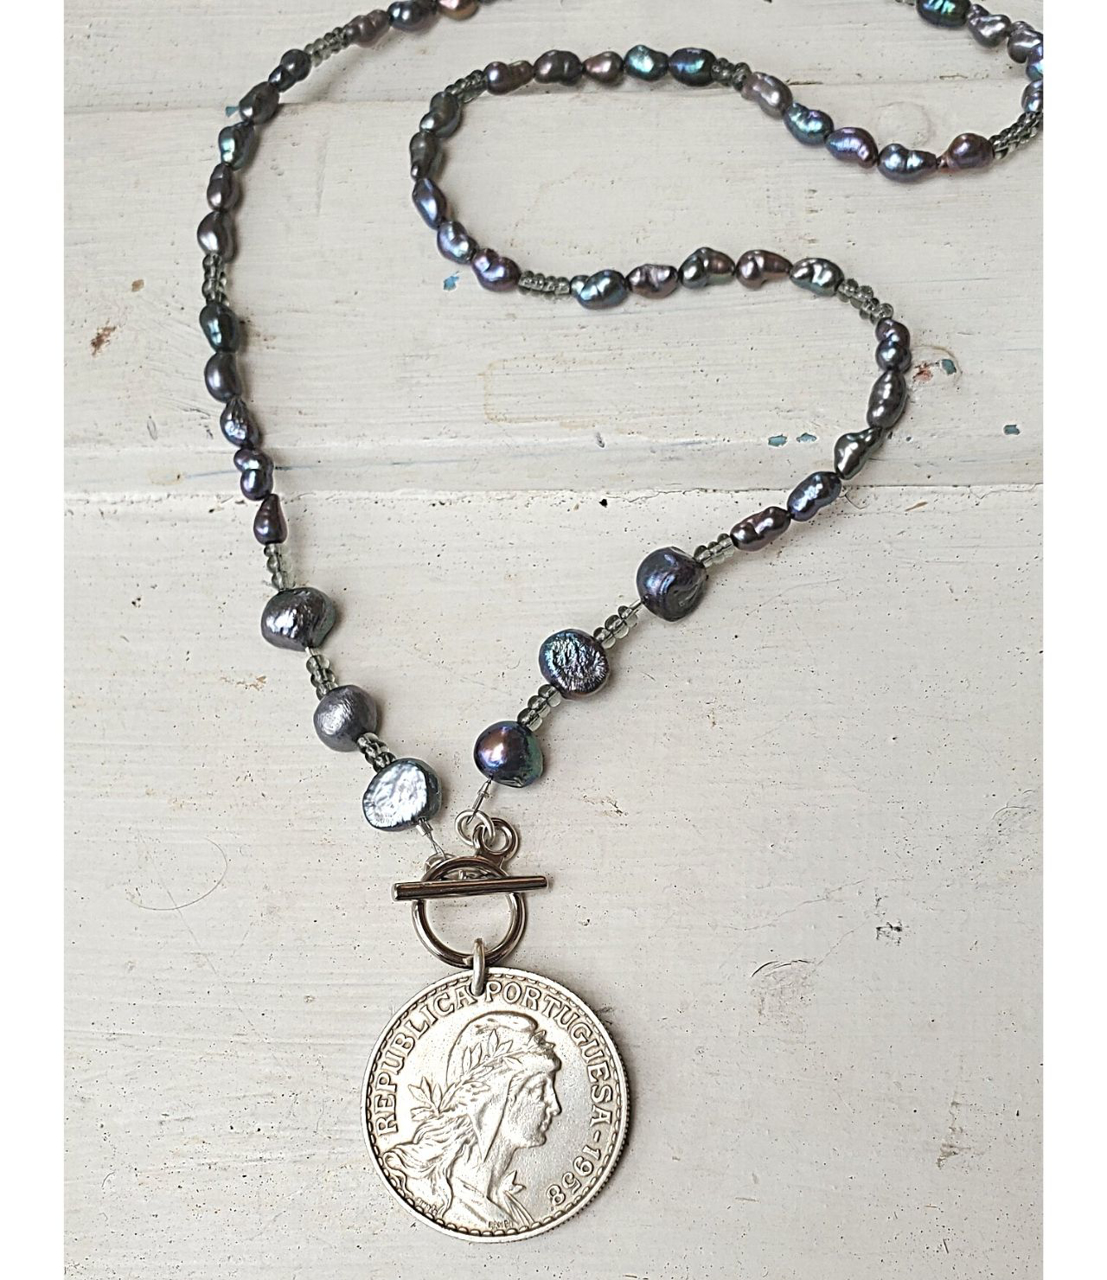 Blue-gray  pearl 1958 Portuguese coin necklace on white distressed wood